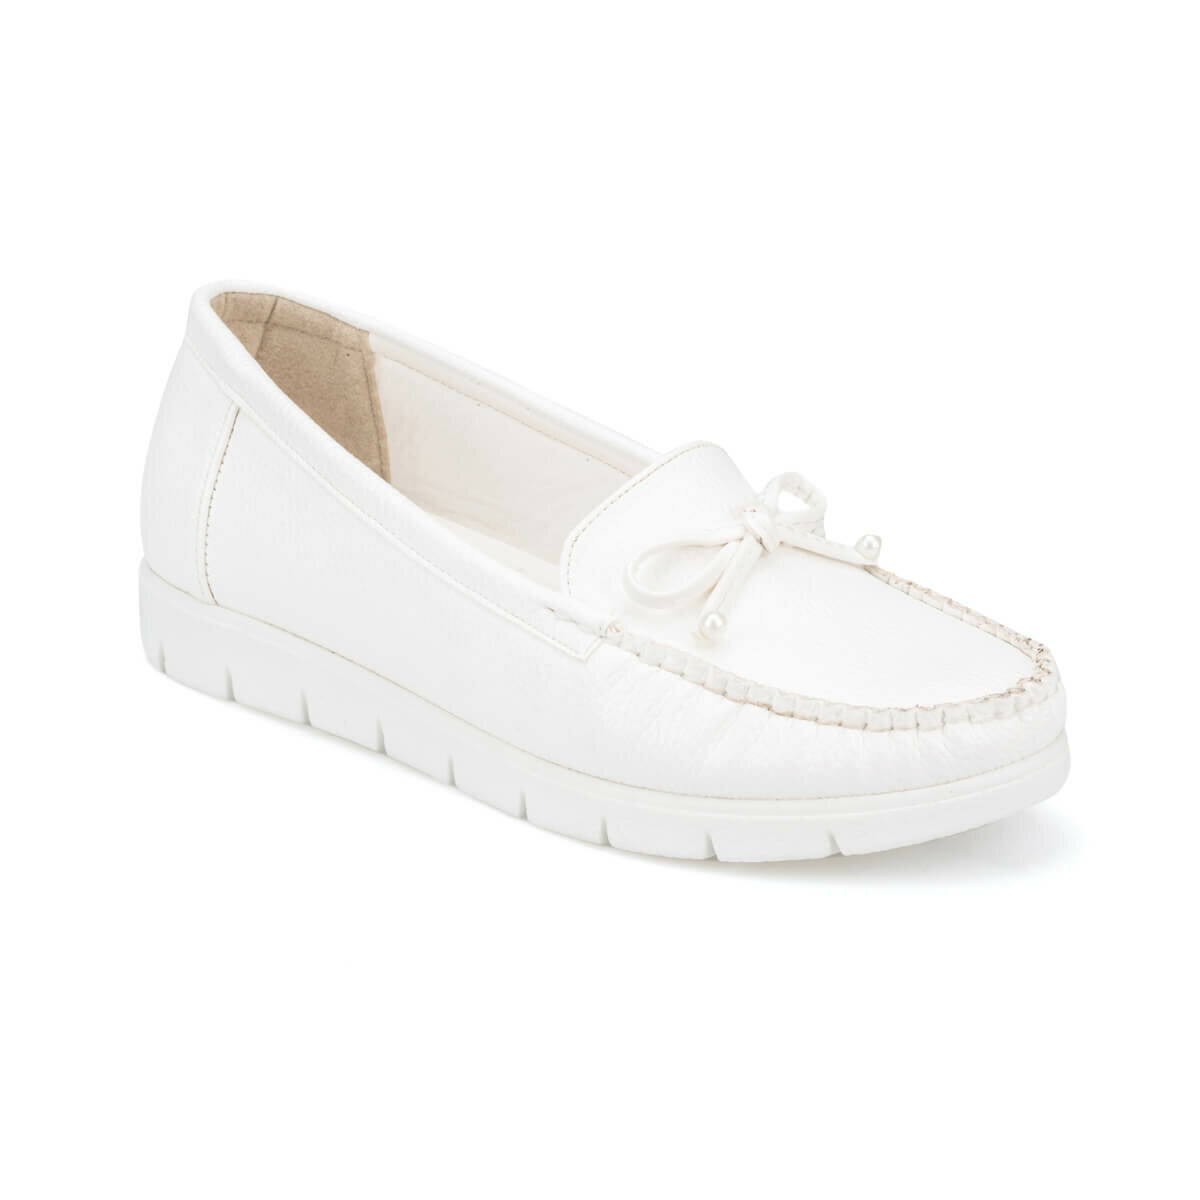 FLO 91.150658.Z White Women 'S Shoes Polaris